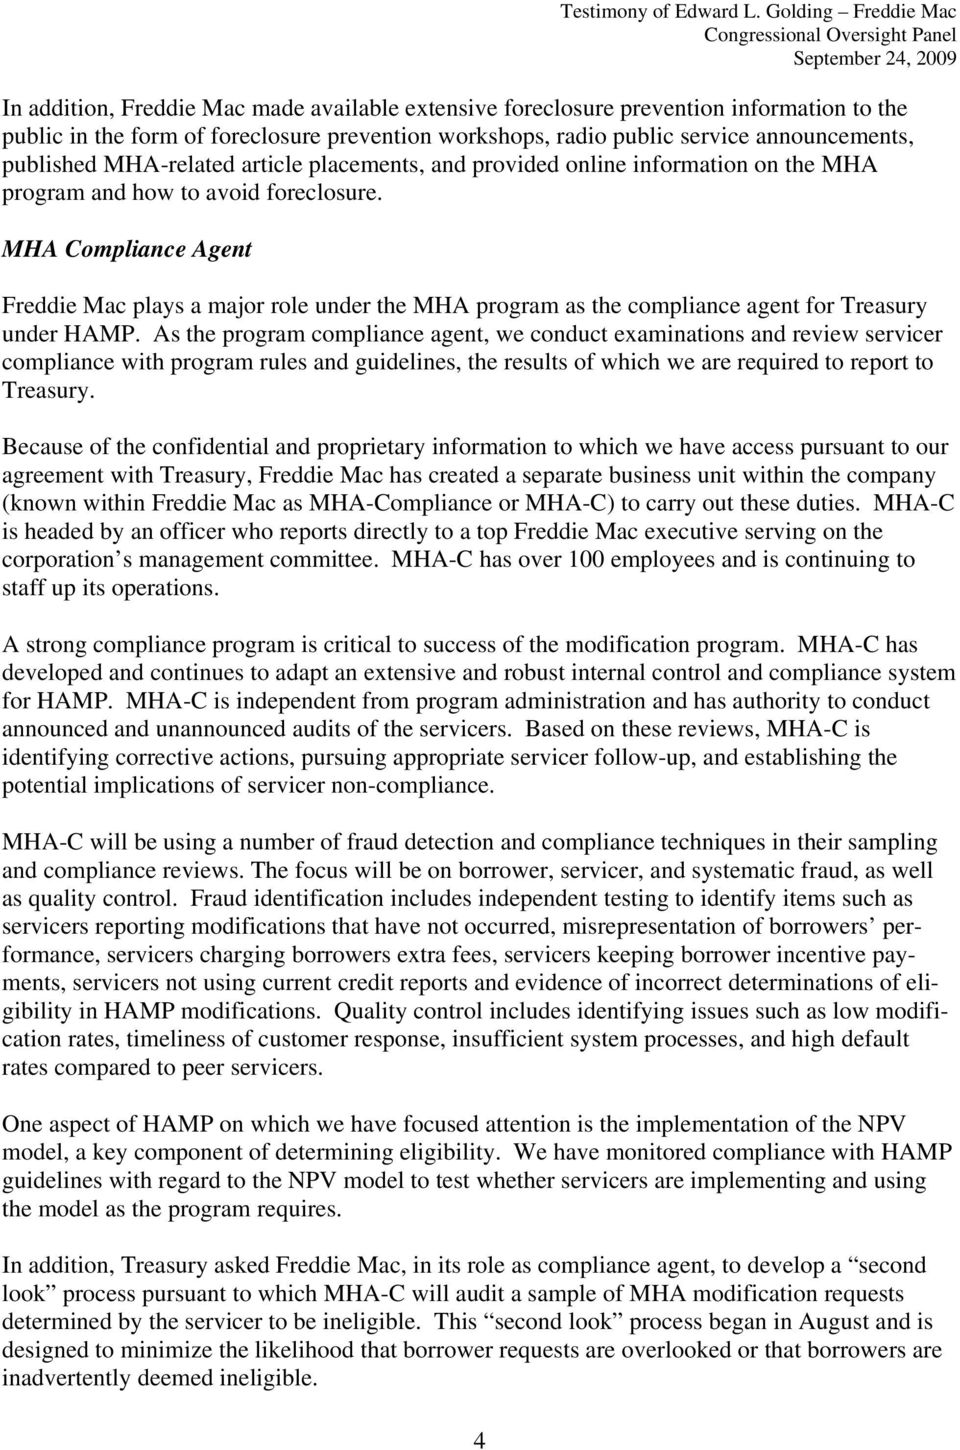 MHA Compliance Agent Freddie Mac plays a major role under the MHA program as the compliance agent for Treasury under HAMP.